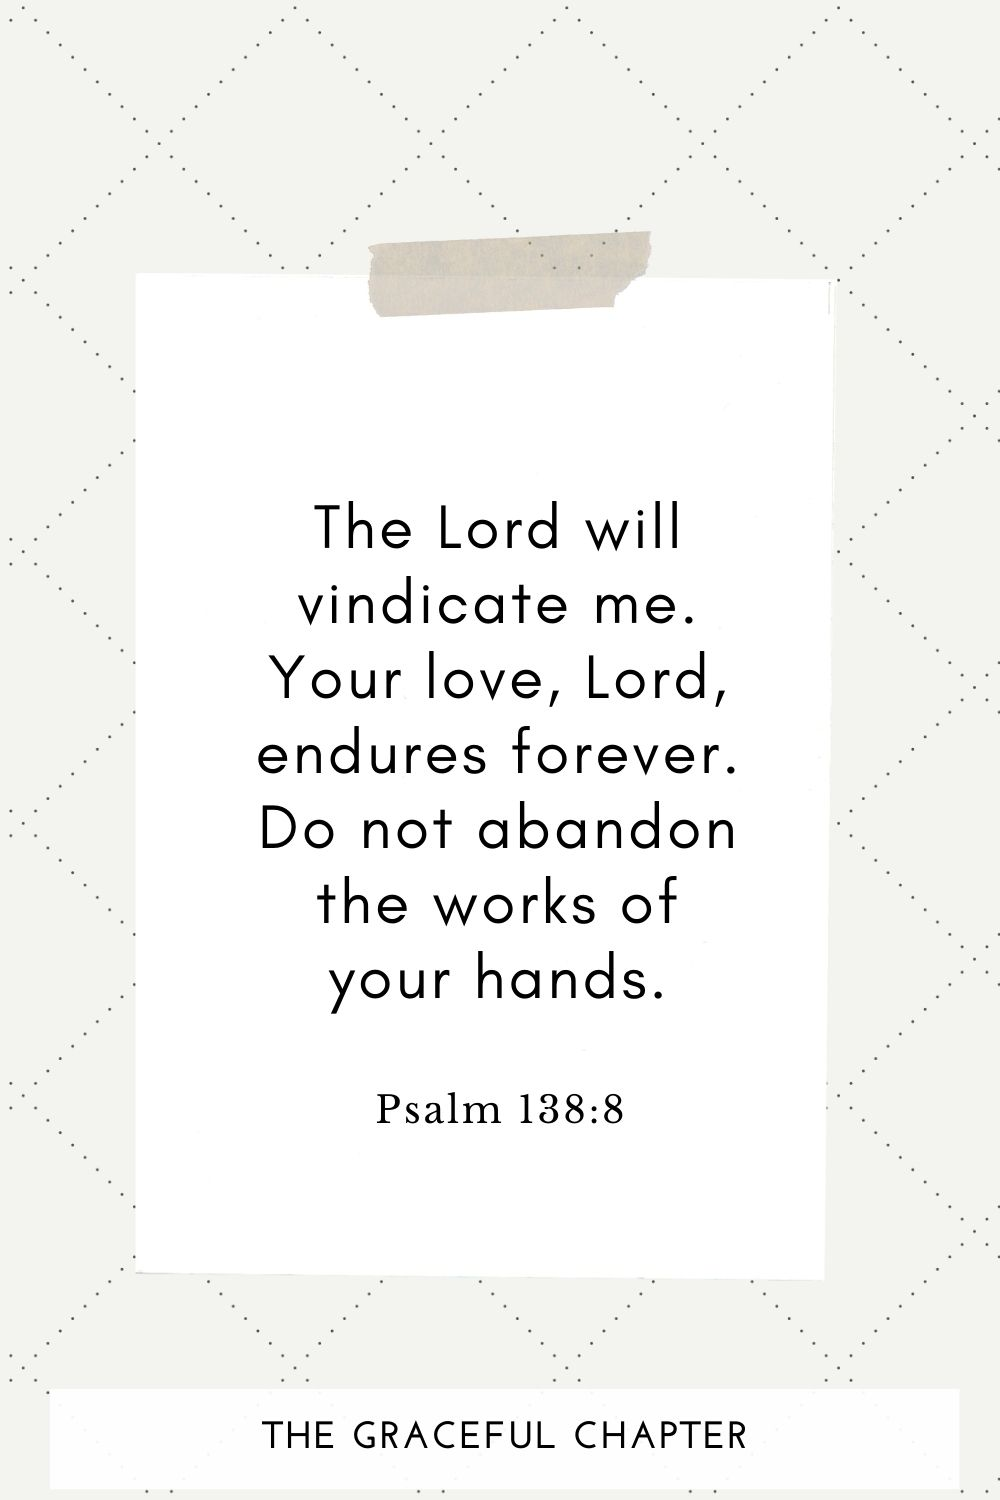 The Lord will vindicate me; your love, Lord, endures forever do not abandon the works of your hands. Psalm 138:8